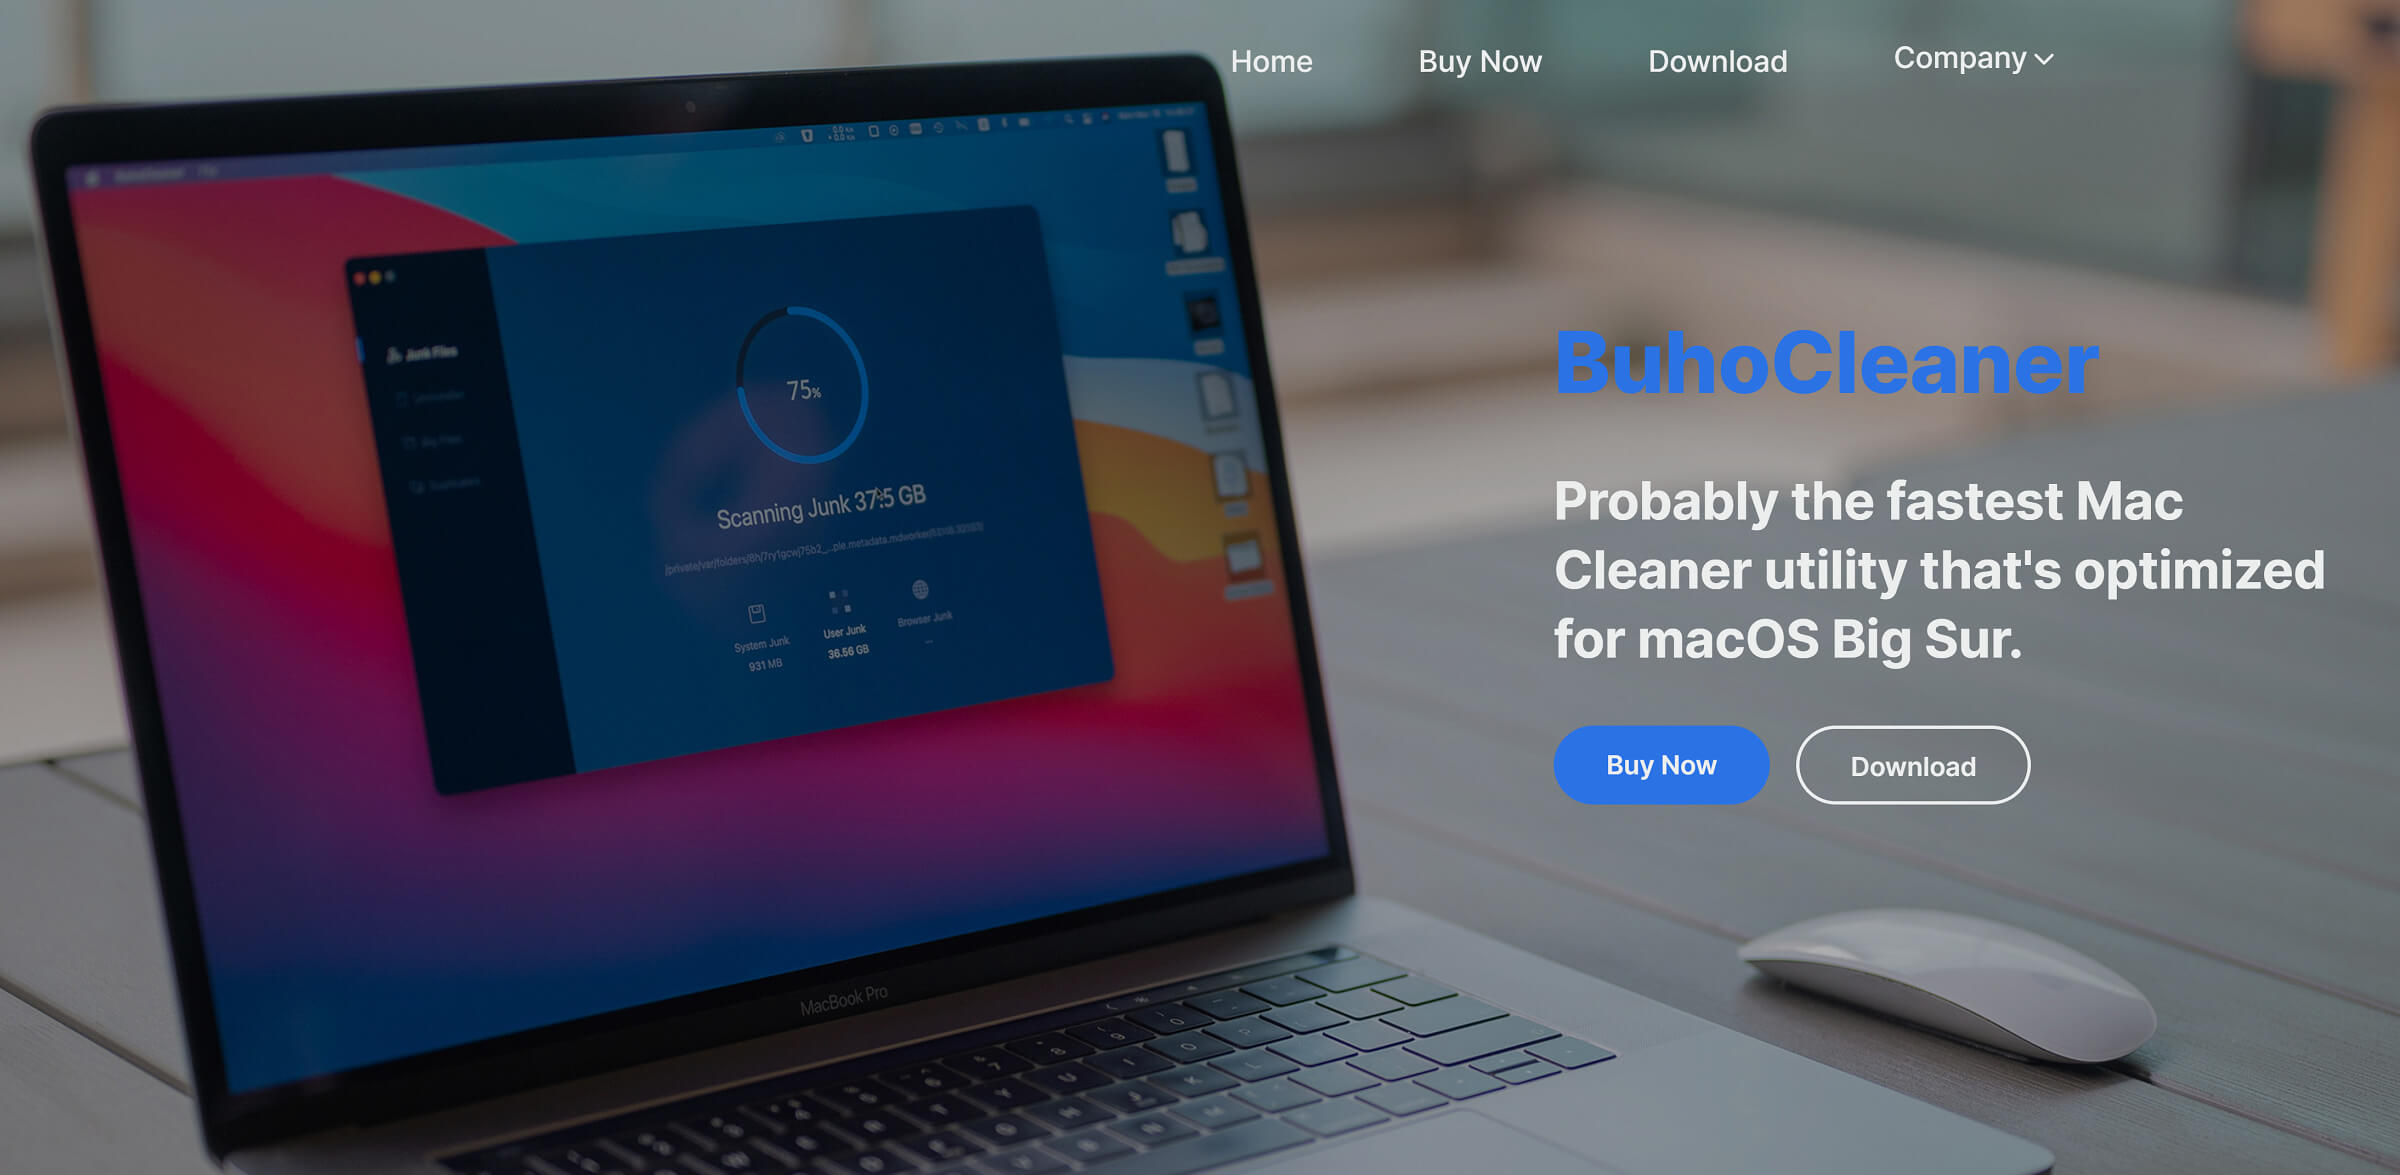 BuhoCleaner: Clean and Speed Up Your macOS Device